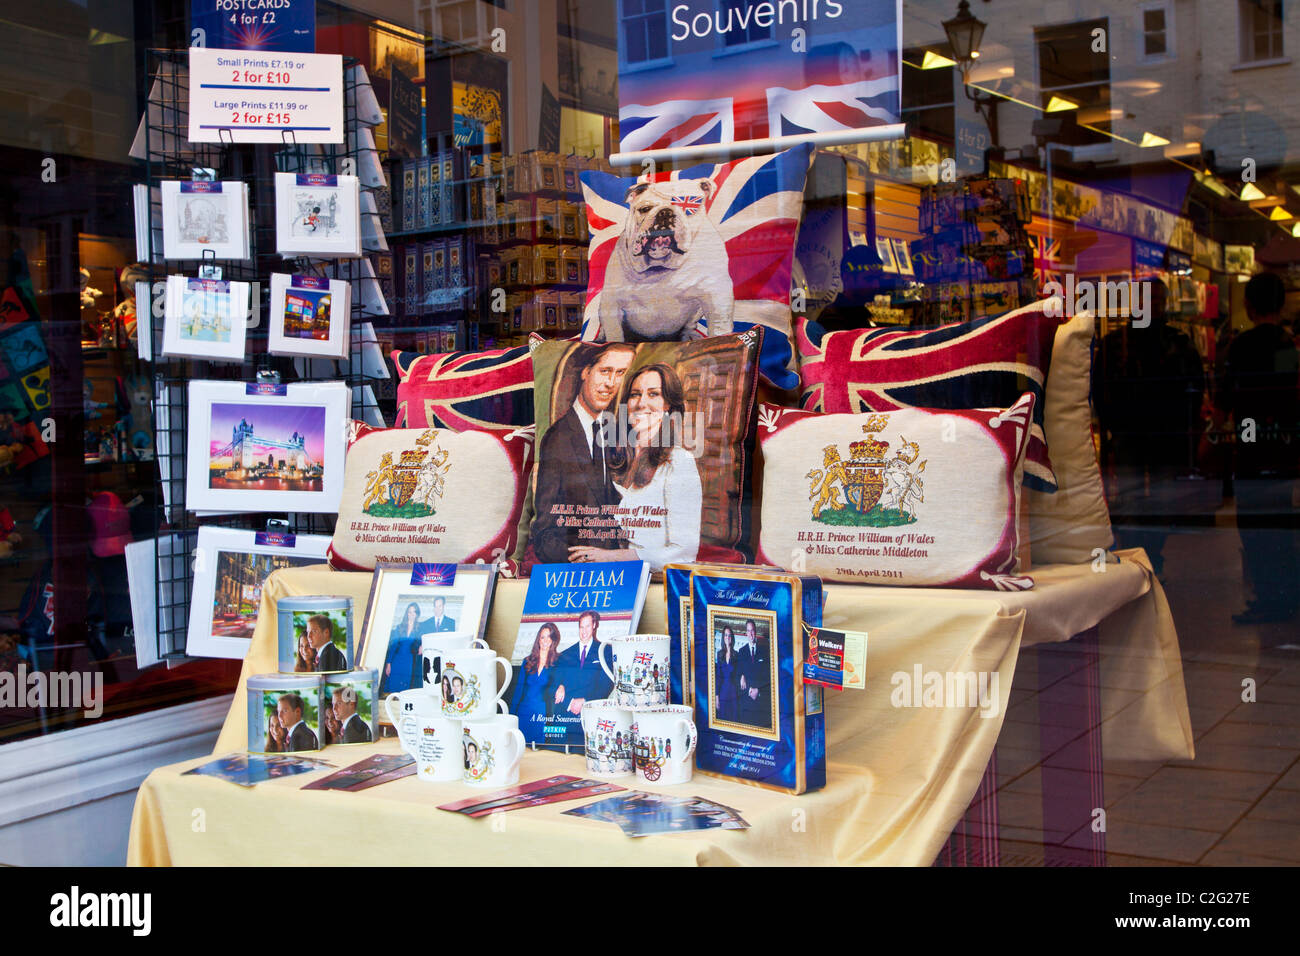 Display of Royal Wedding, William and Kate, souvenirs,memorabilia and gifts in a shop or store window in Windsor, - Stock Image